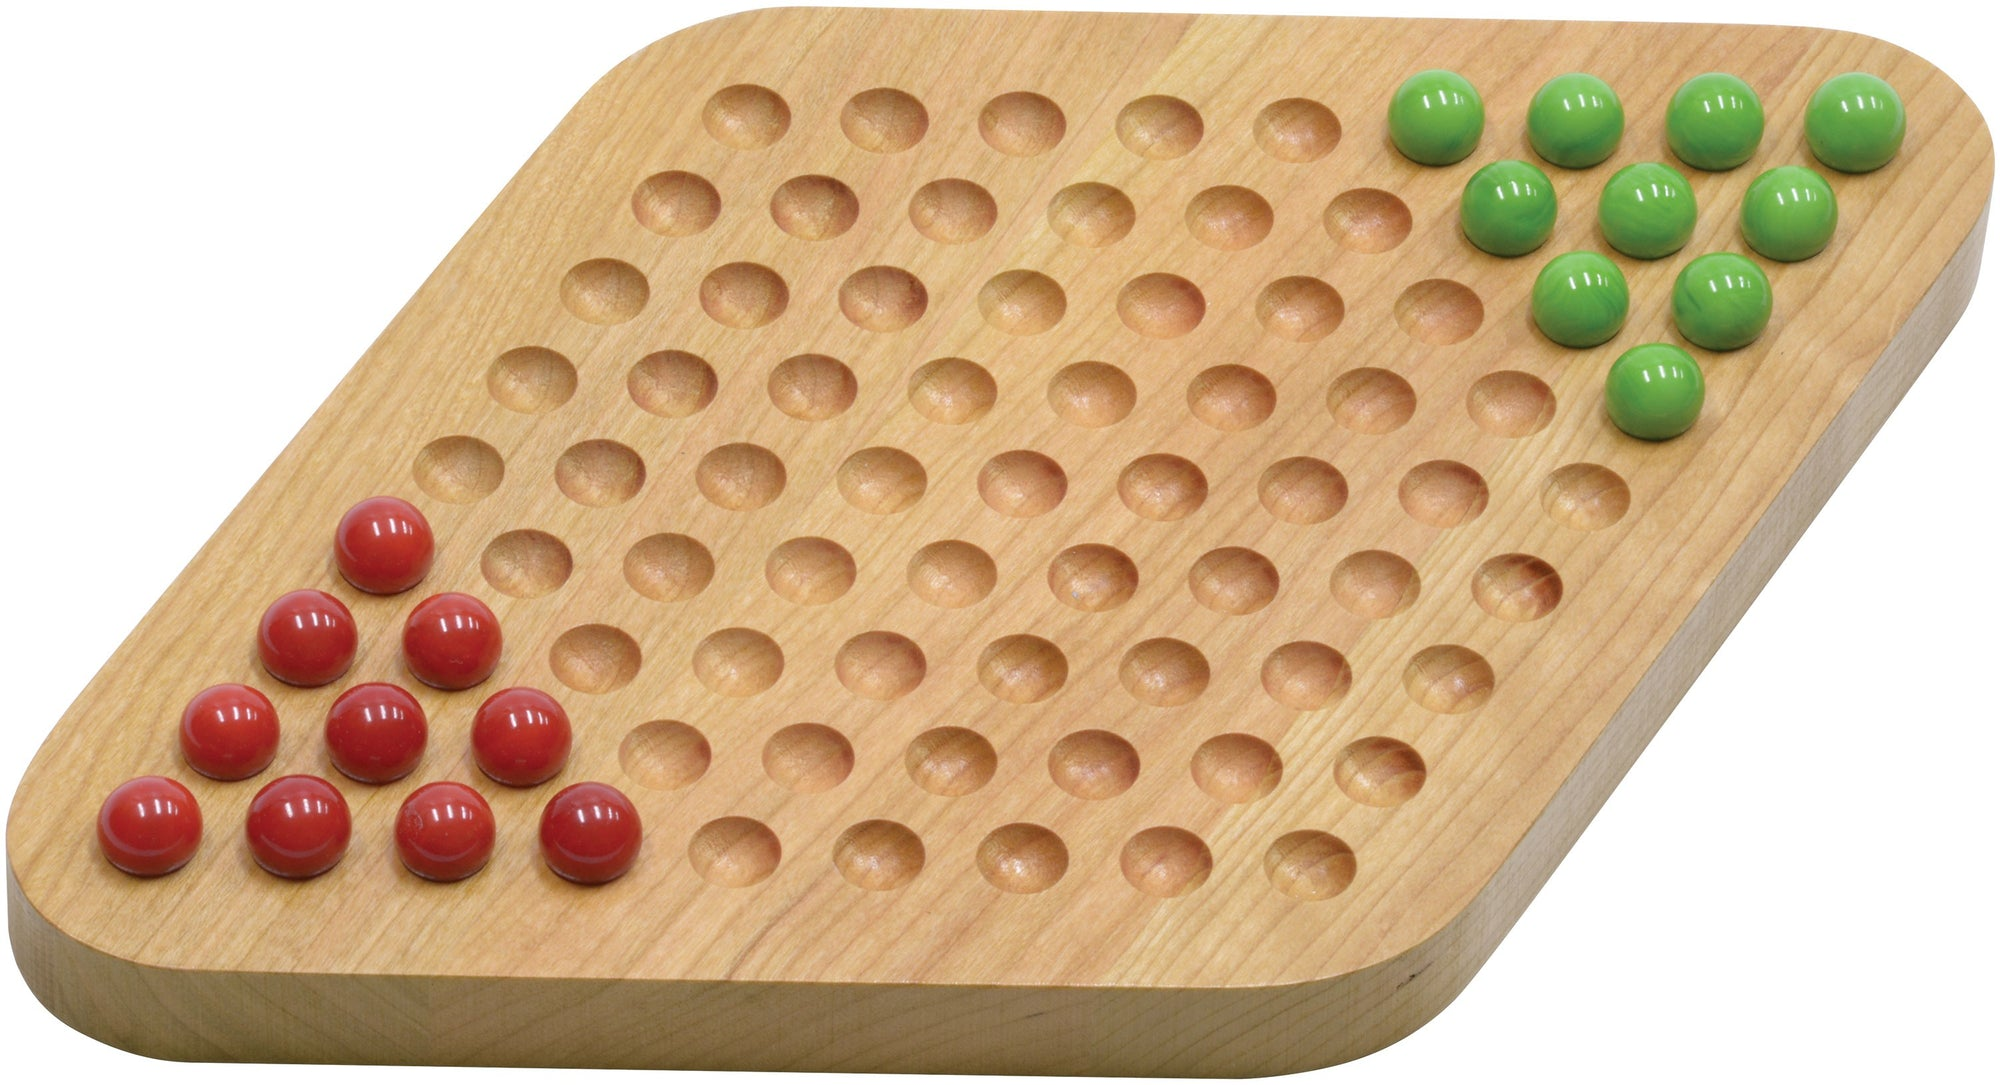 Two-Player Chinese Checkers - Heart of the Home PA